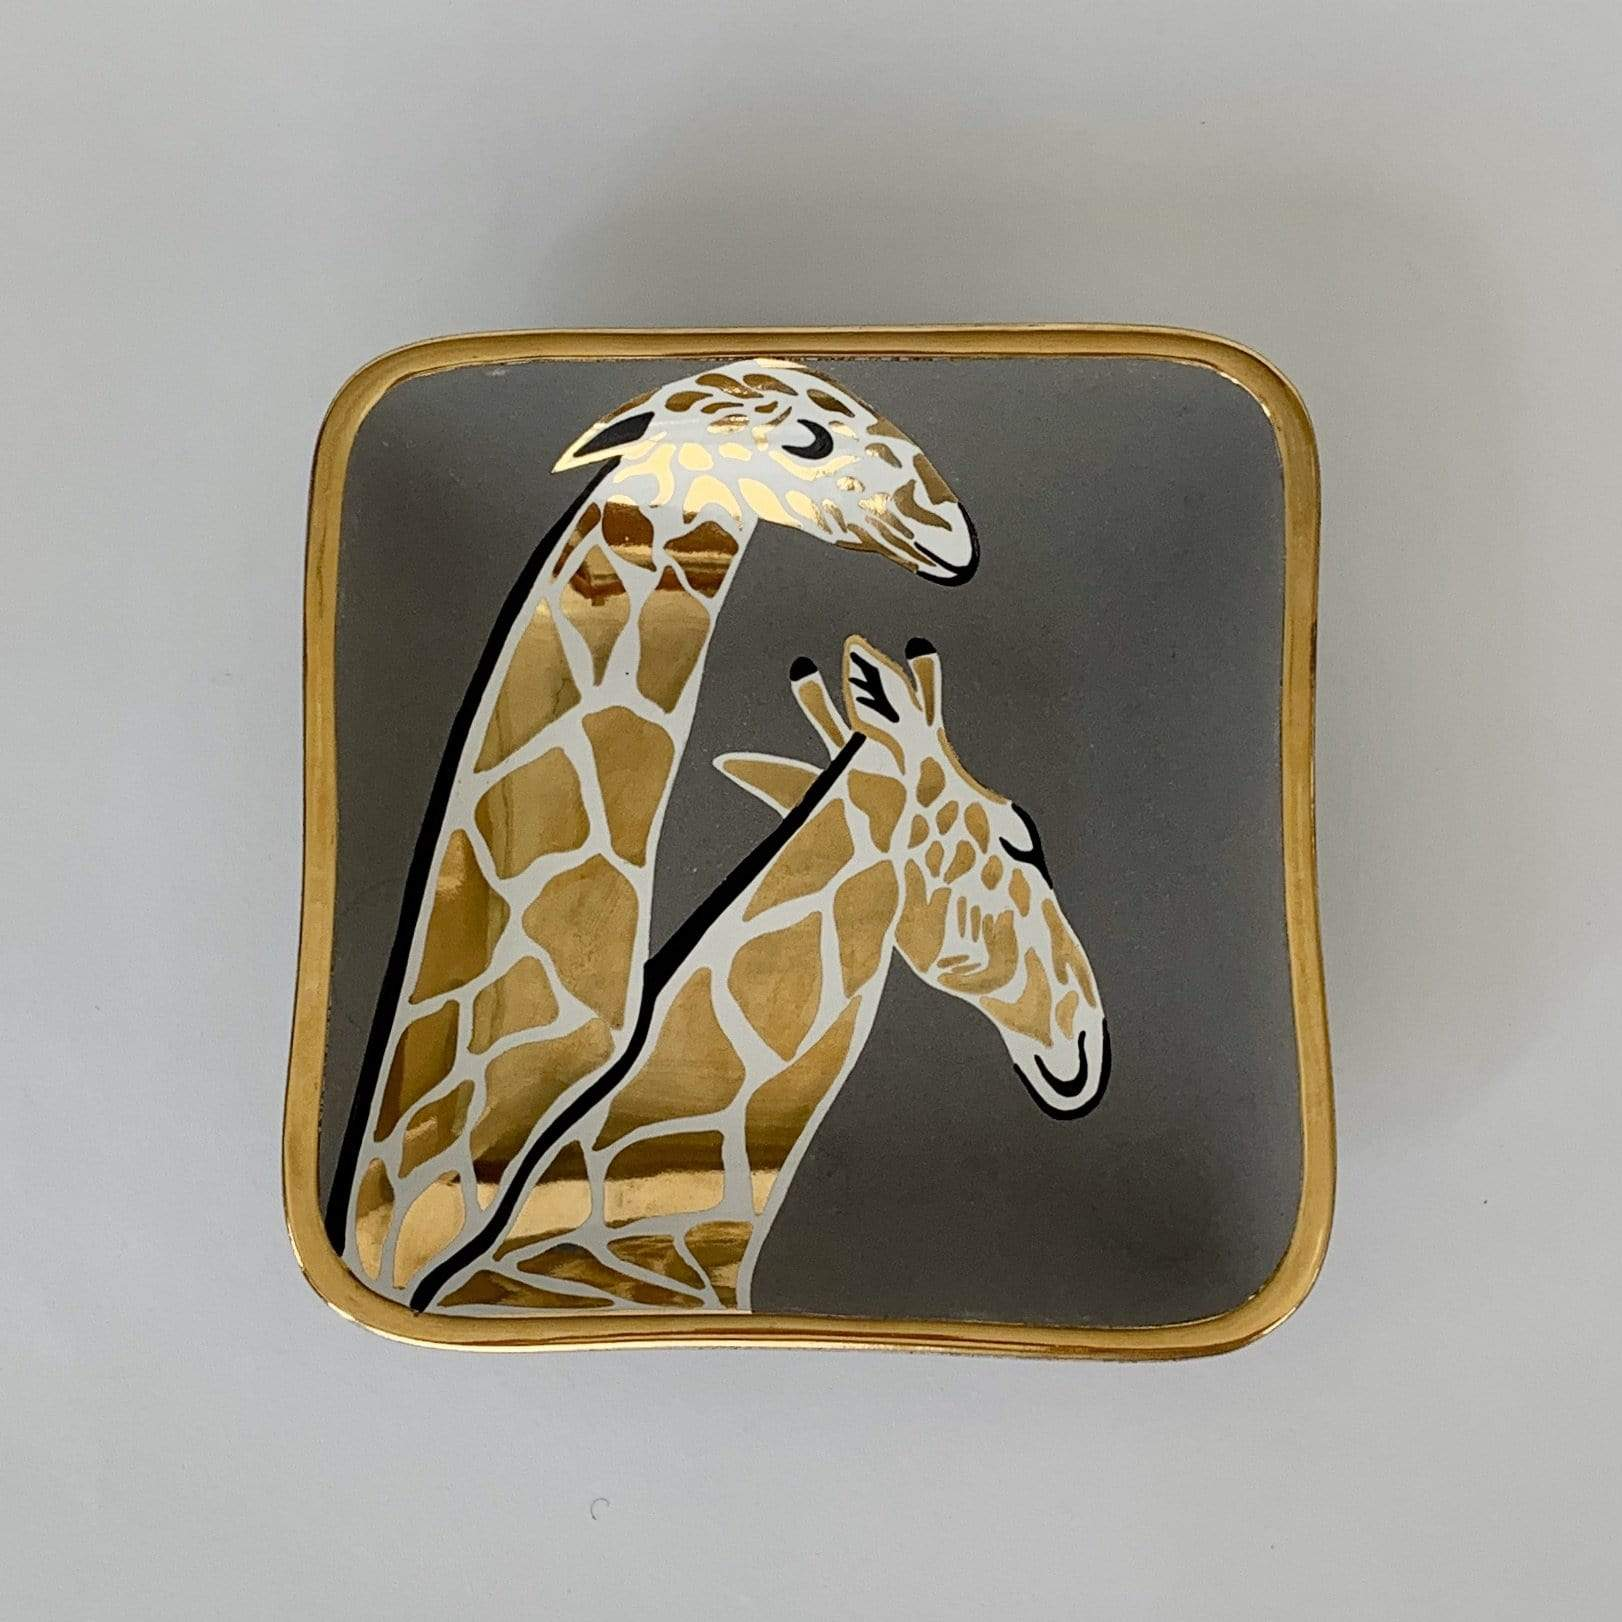 Square Giraffe Bowl